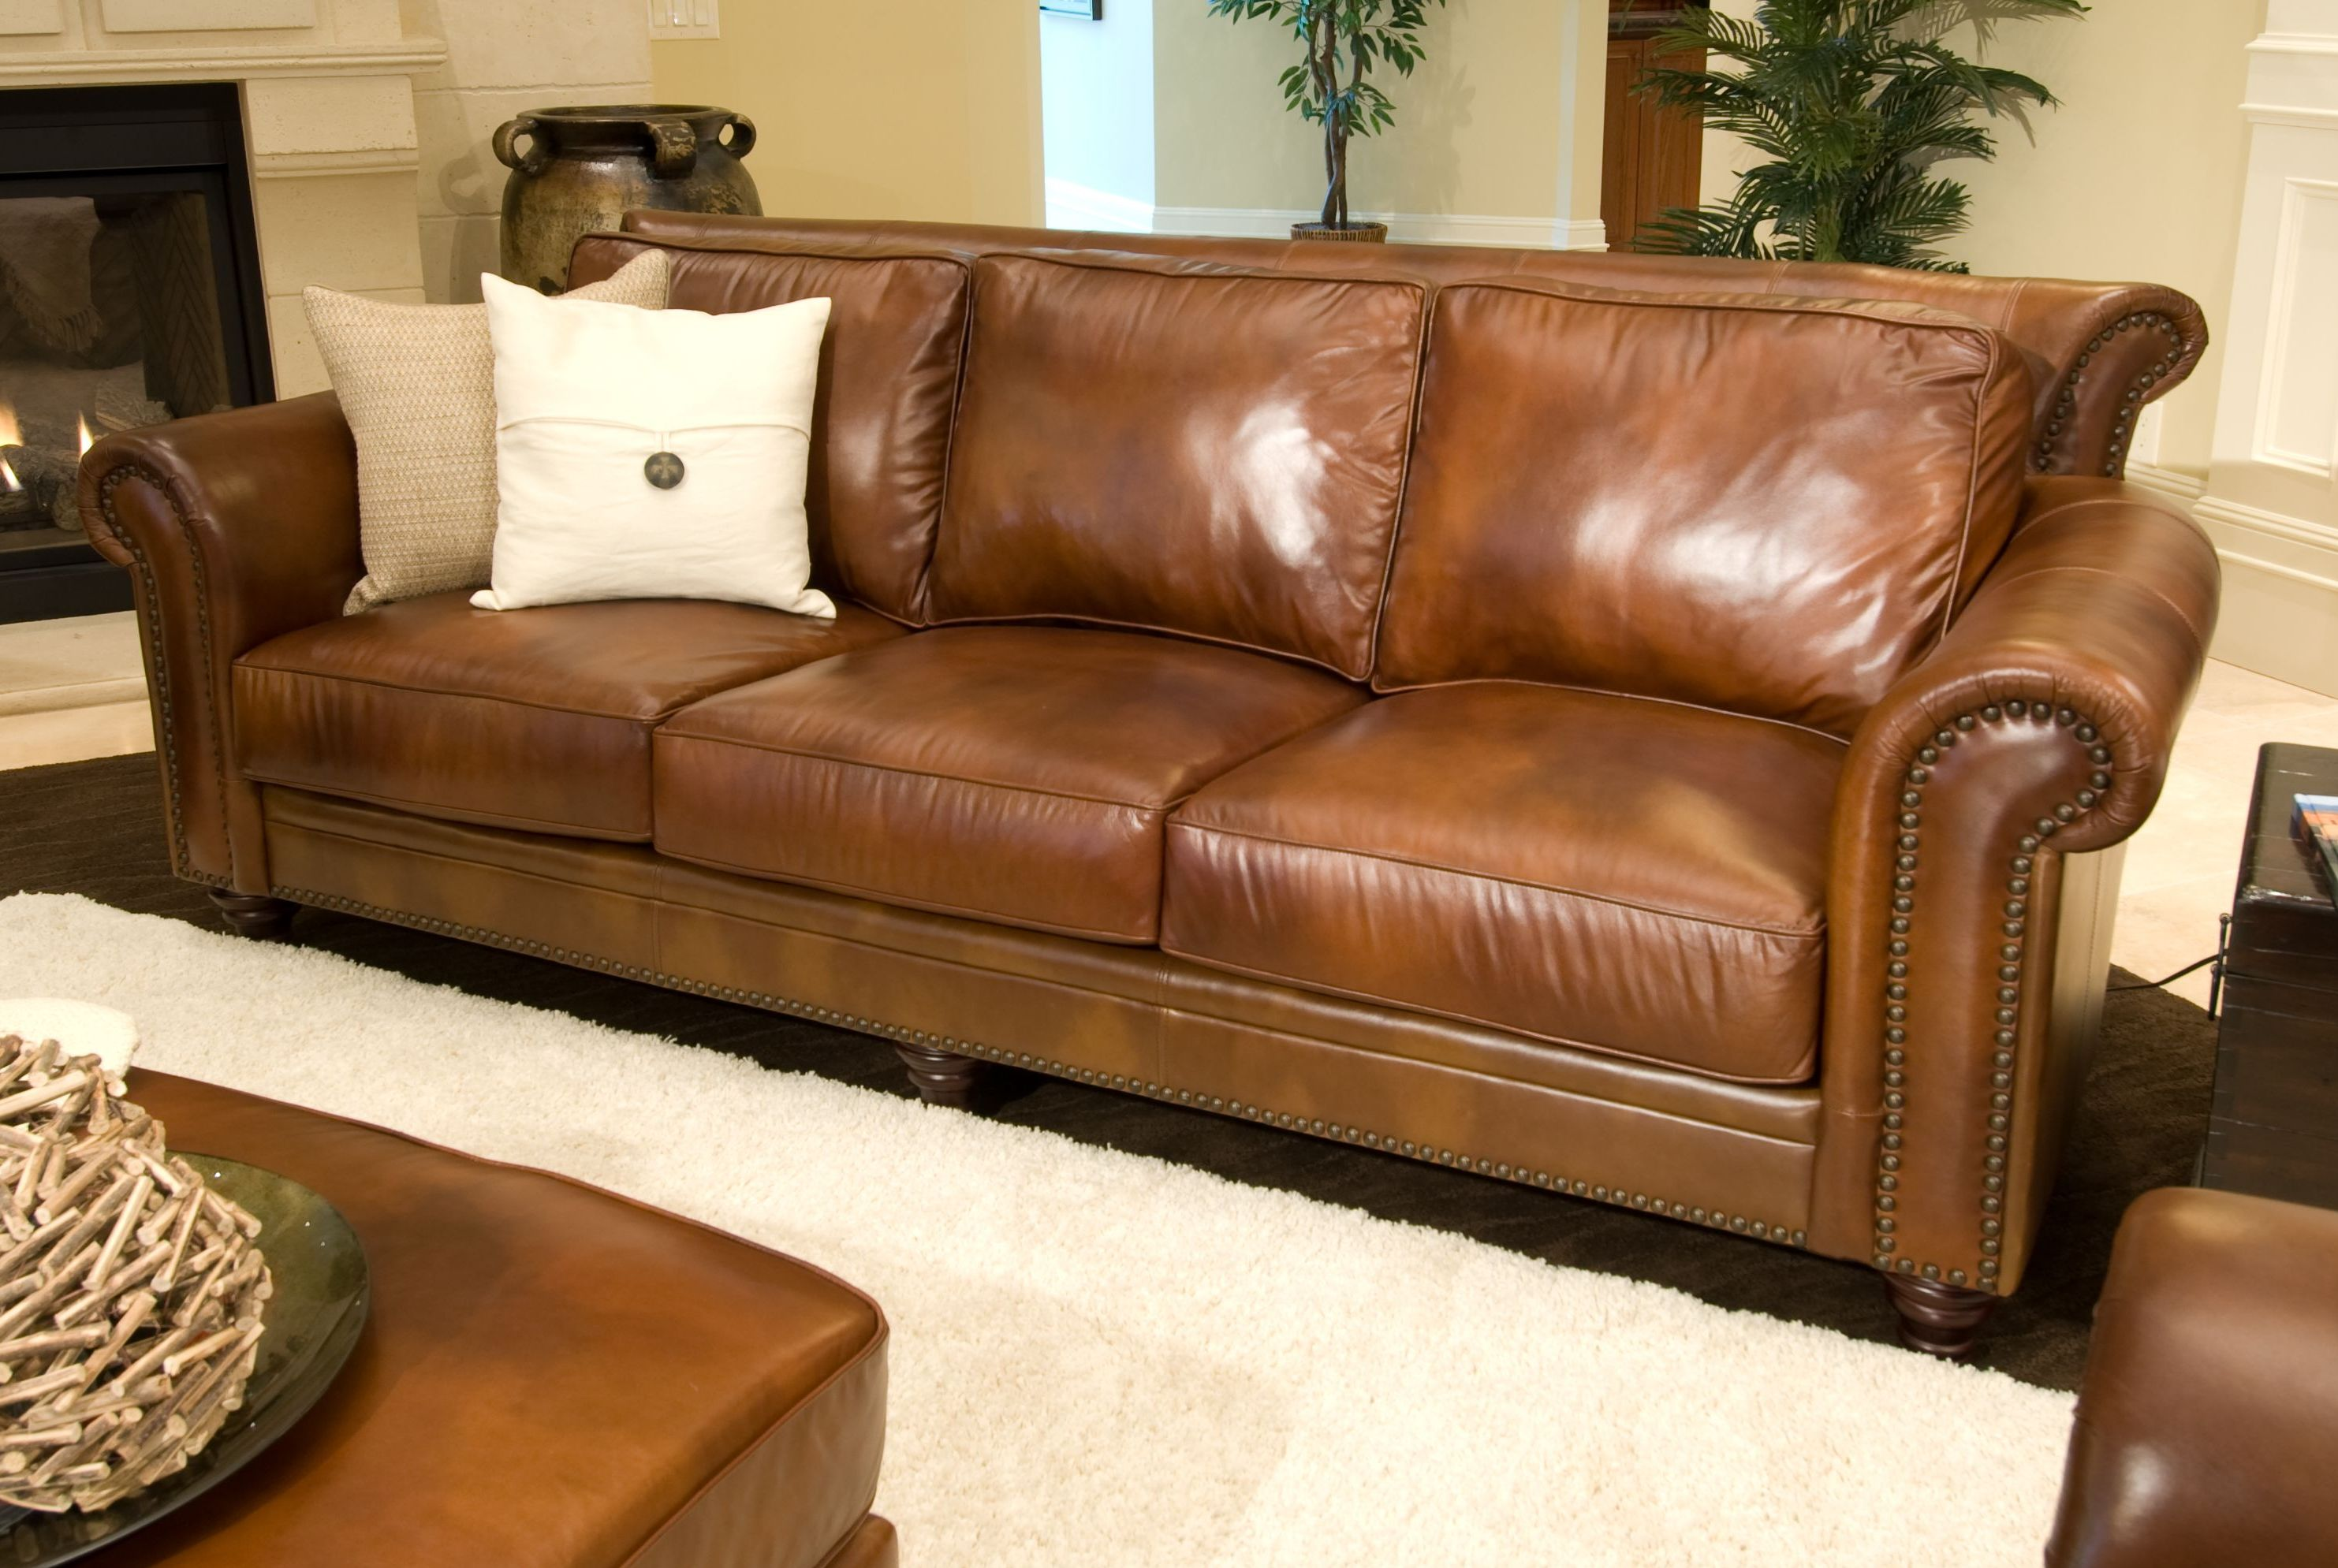 Amazing Light Brown Leather Sofa 15 Modern Sofa Ideas with Light